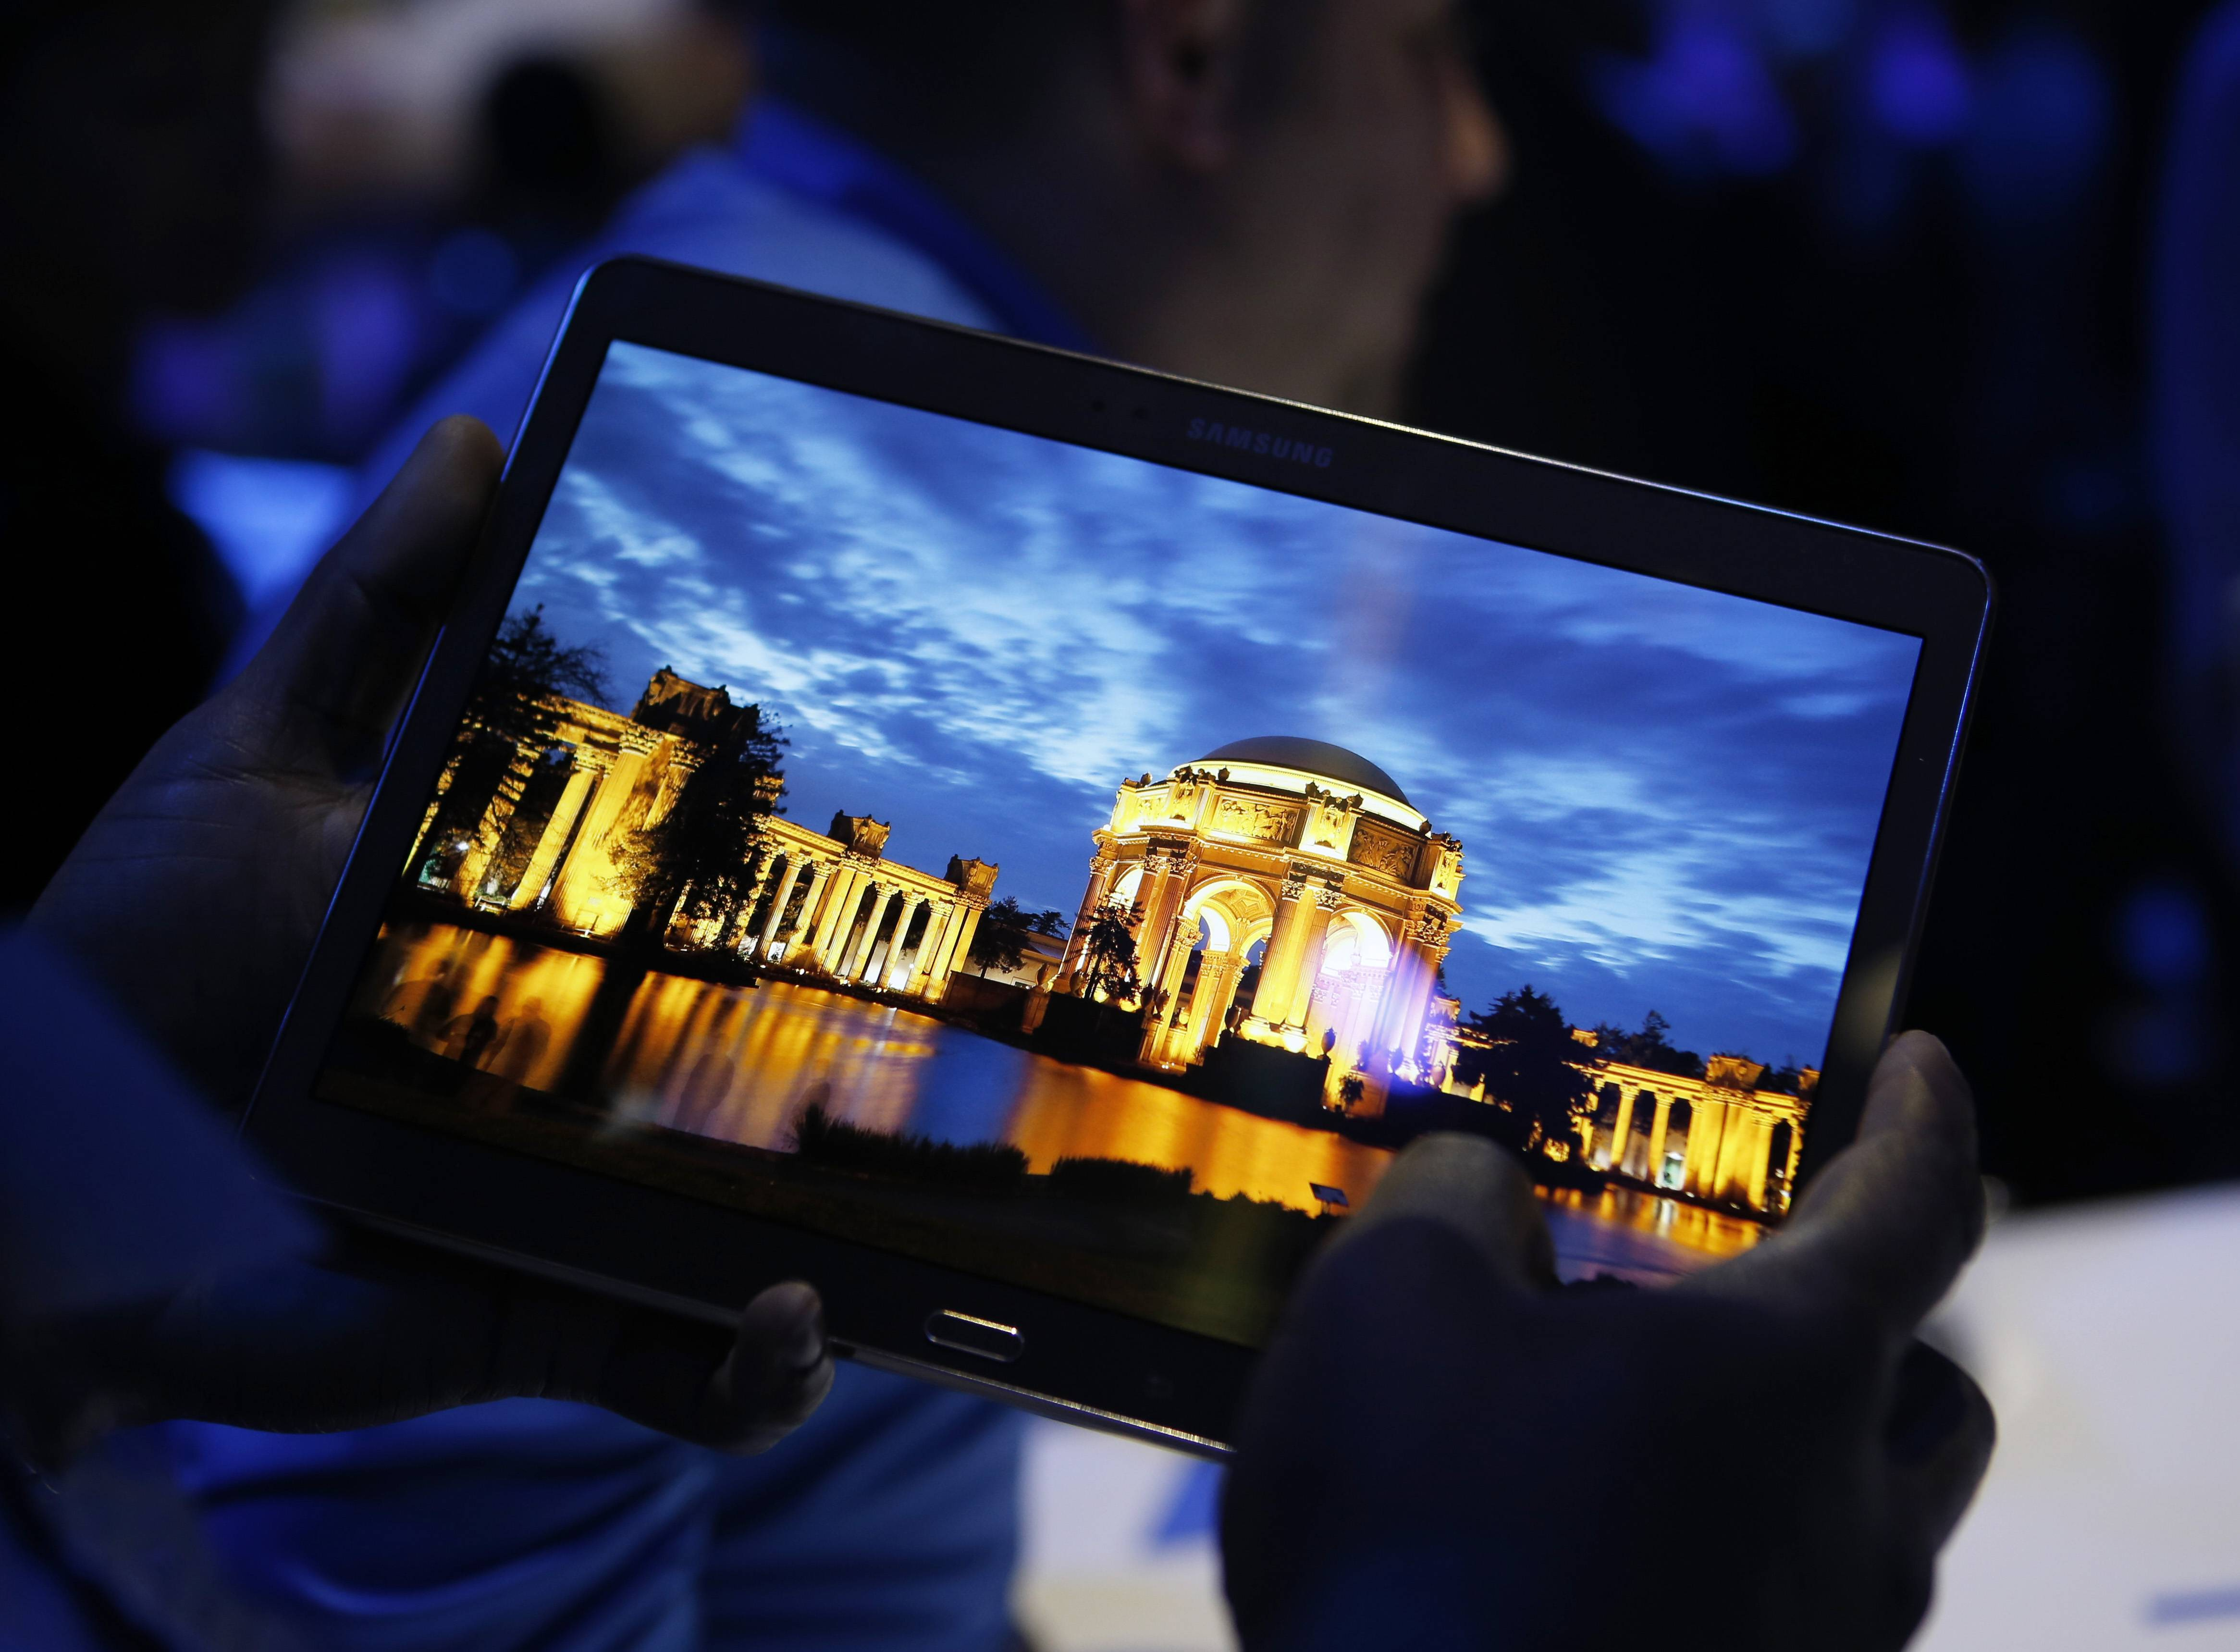 A member of the media tries out a new Samsung Galaxy Tab S after the tablet's debut at a news conference in New York. The new display technology in Samsung's Galaxy Tab S tablet brings colors to life and reduces the device's bulk.